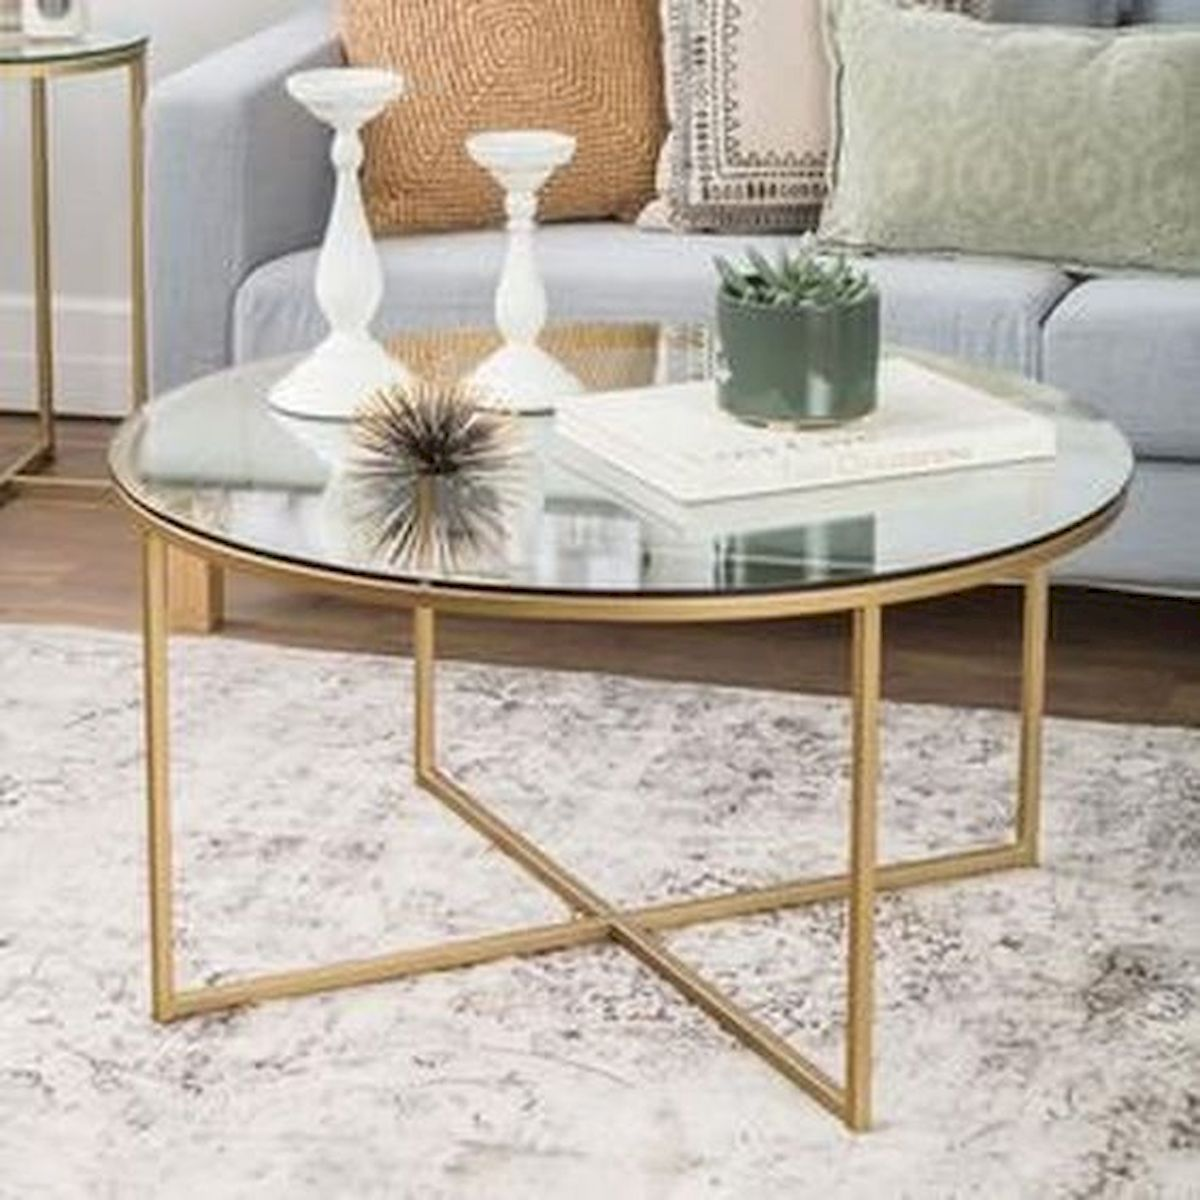 40 Awesome Modern Glass Coffee Table Design Ideas For Your Living Room Gold Coffee Table Coffee Table Round Coffee Table [ 1200 x 1200 Pixel ]